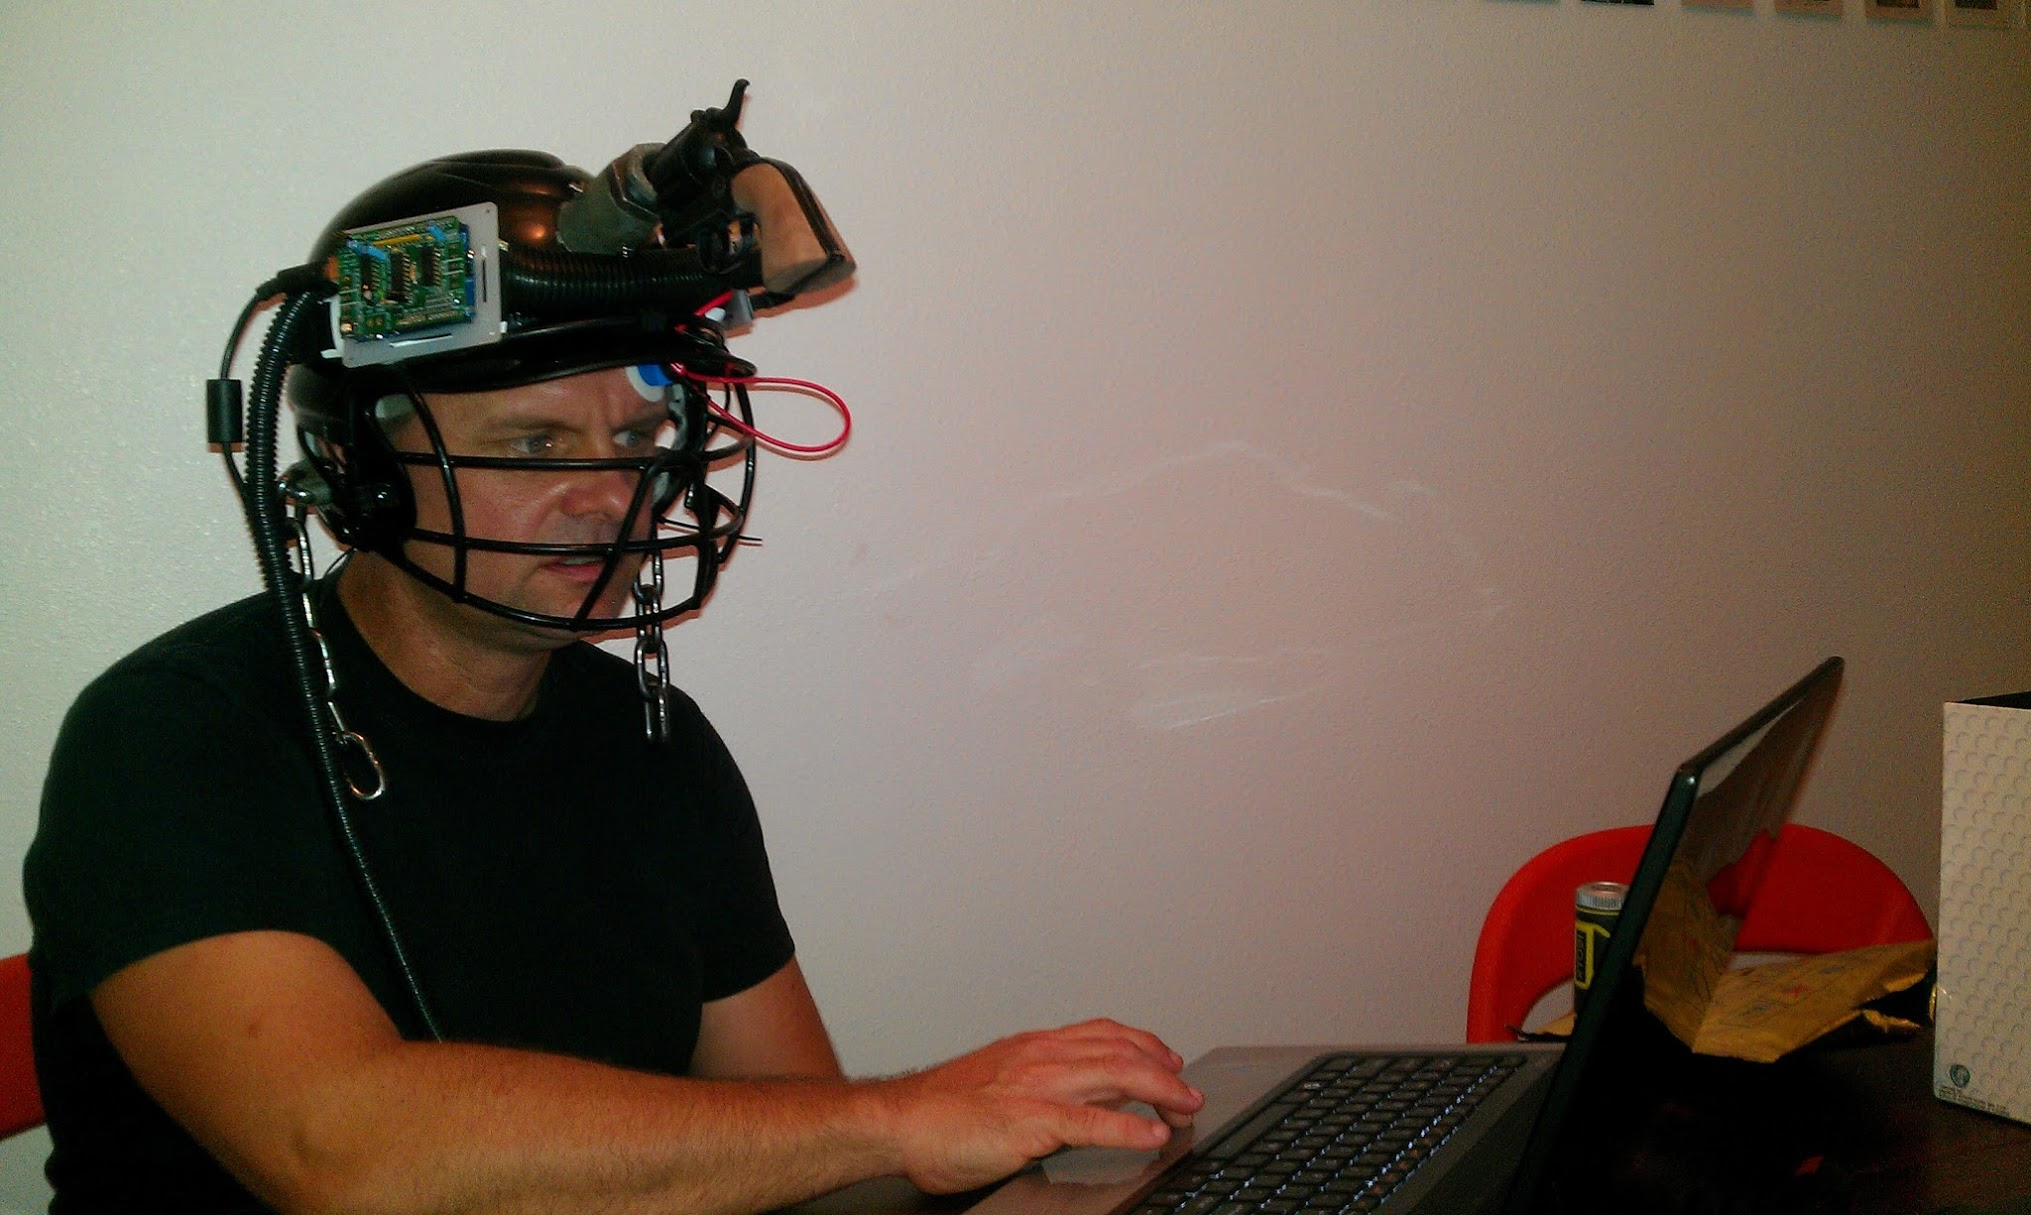 Devon tests the Bright Future helmet prior to its debut at the Art For The Survivors exhibition.